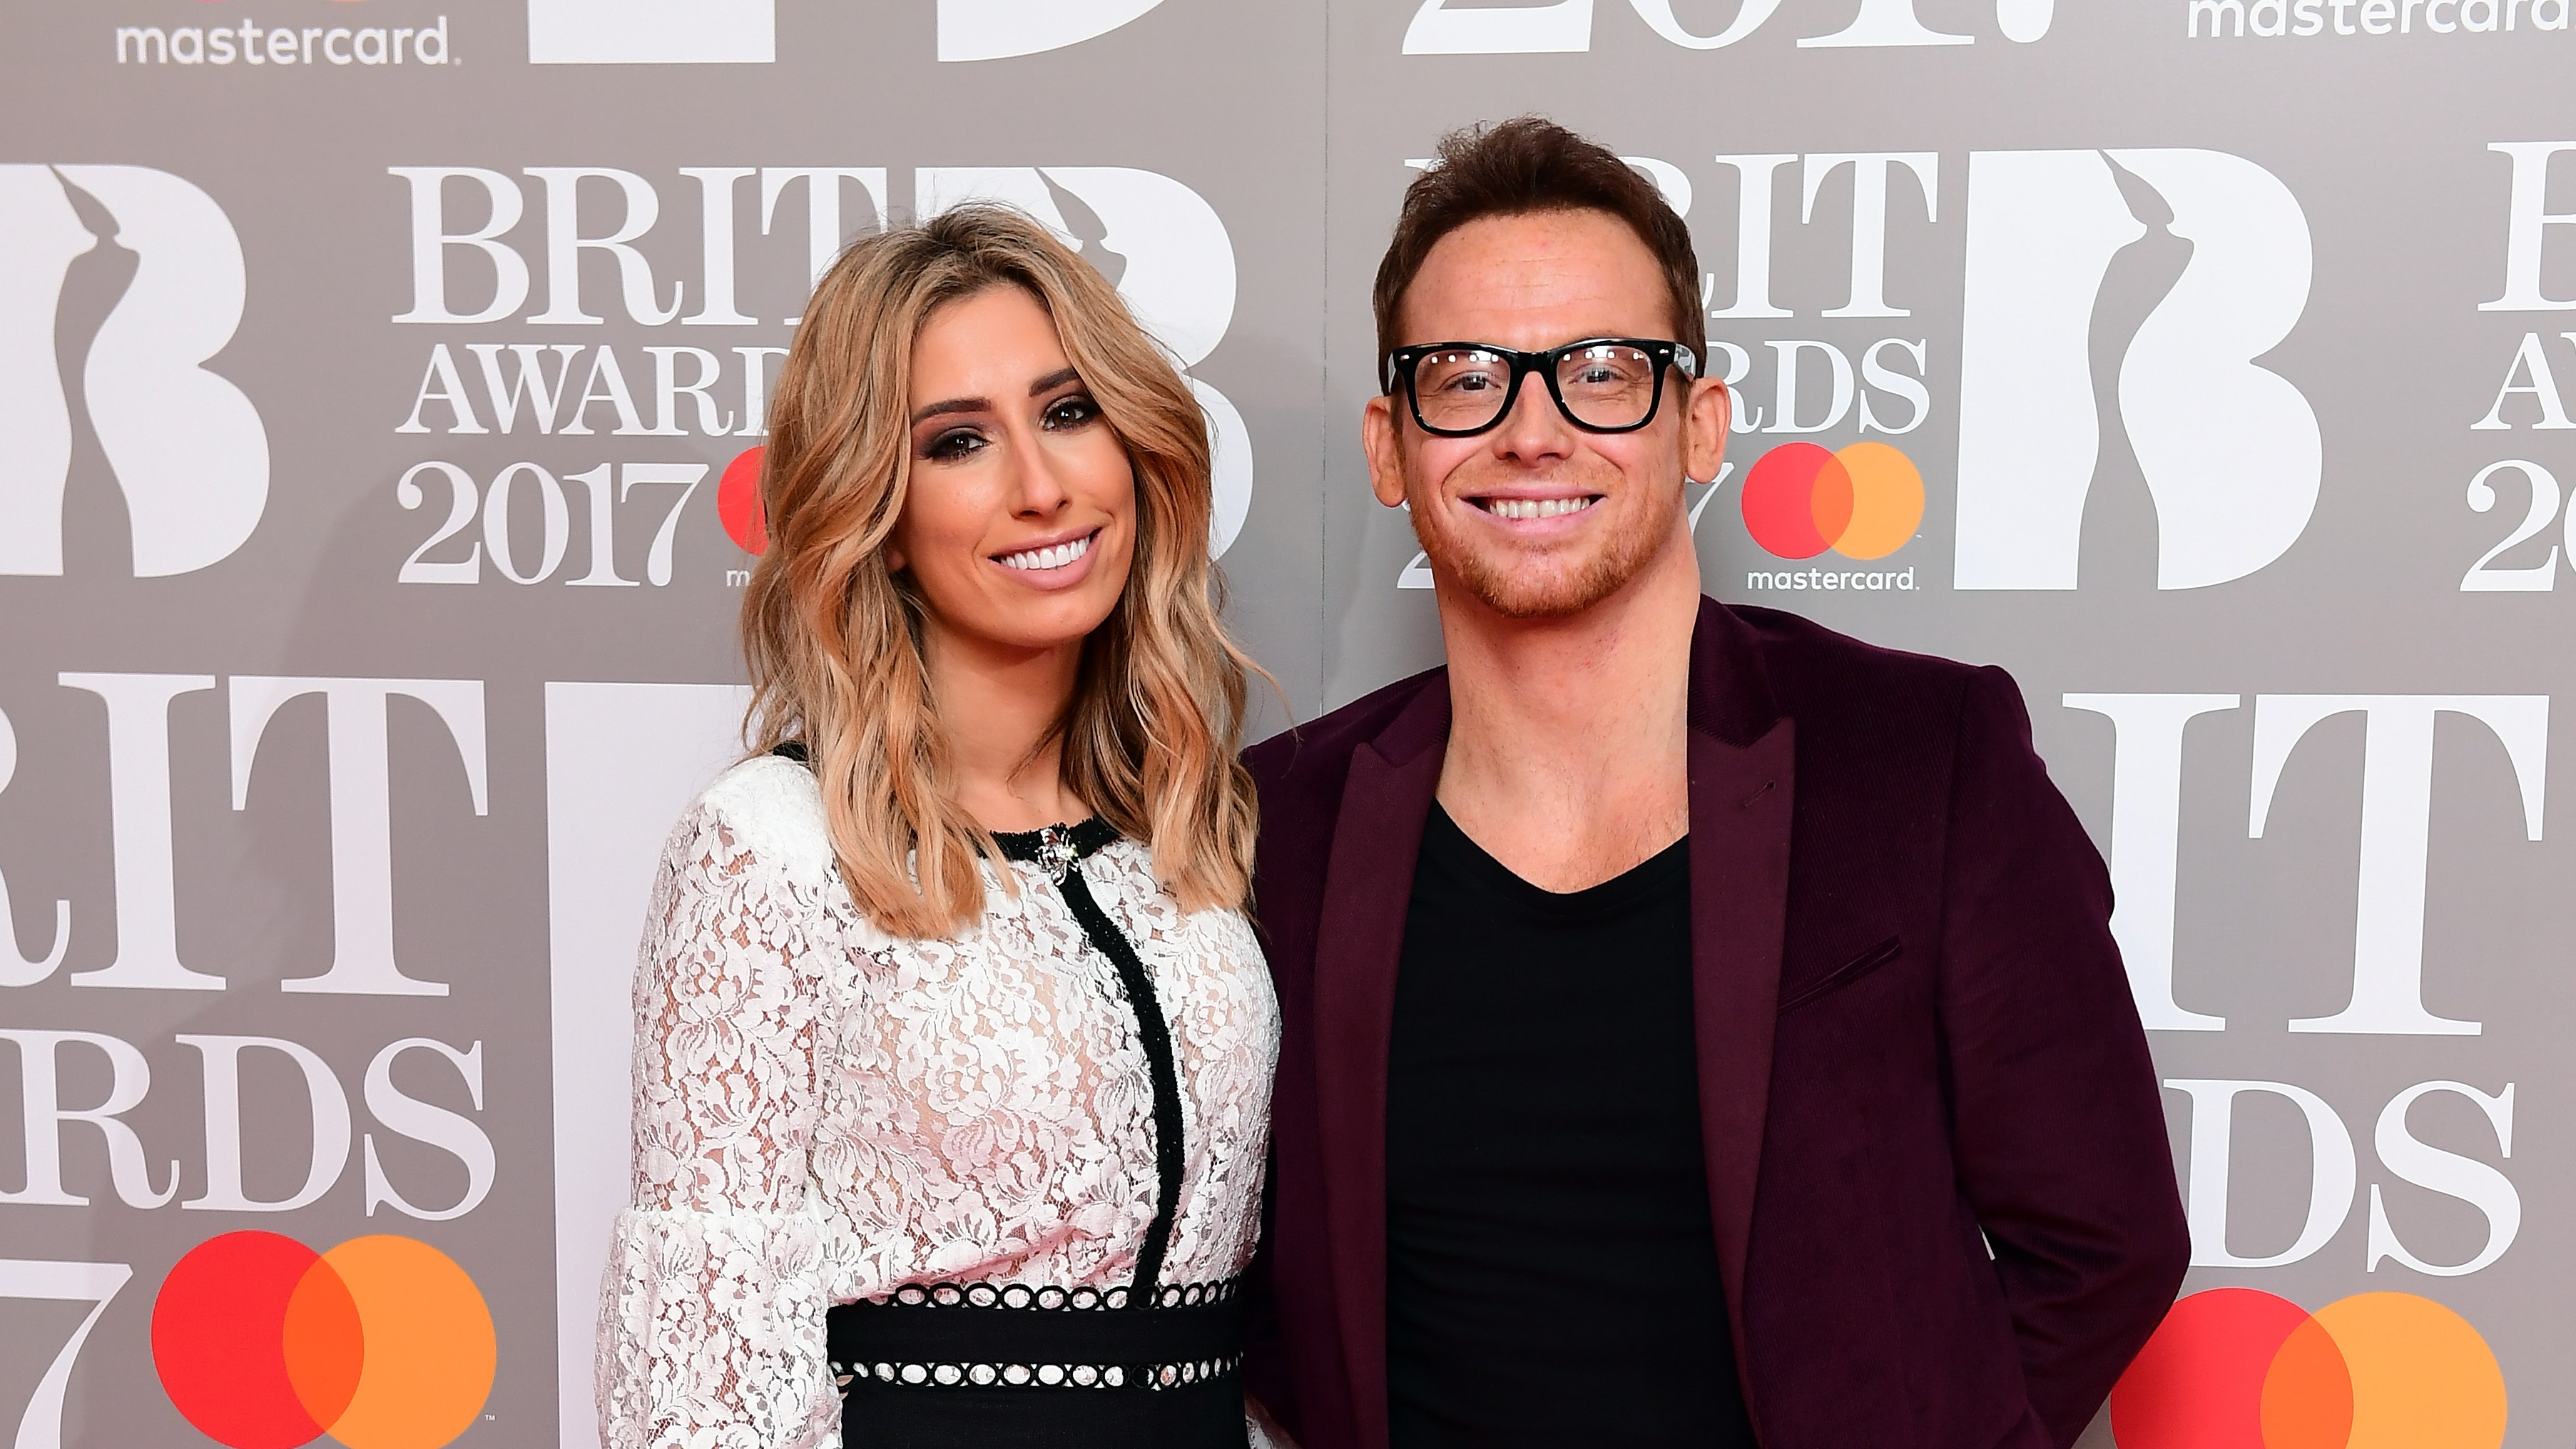 Stacey Solomon and Joe Swash have welcomed a baby boy together